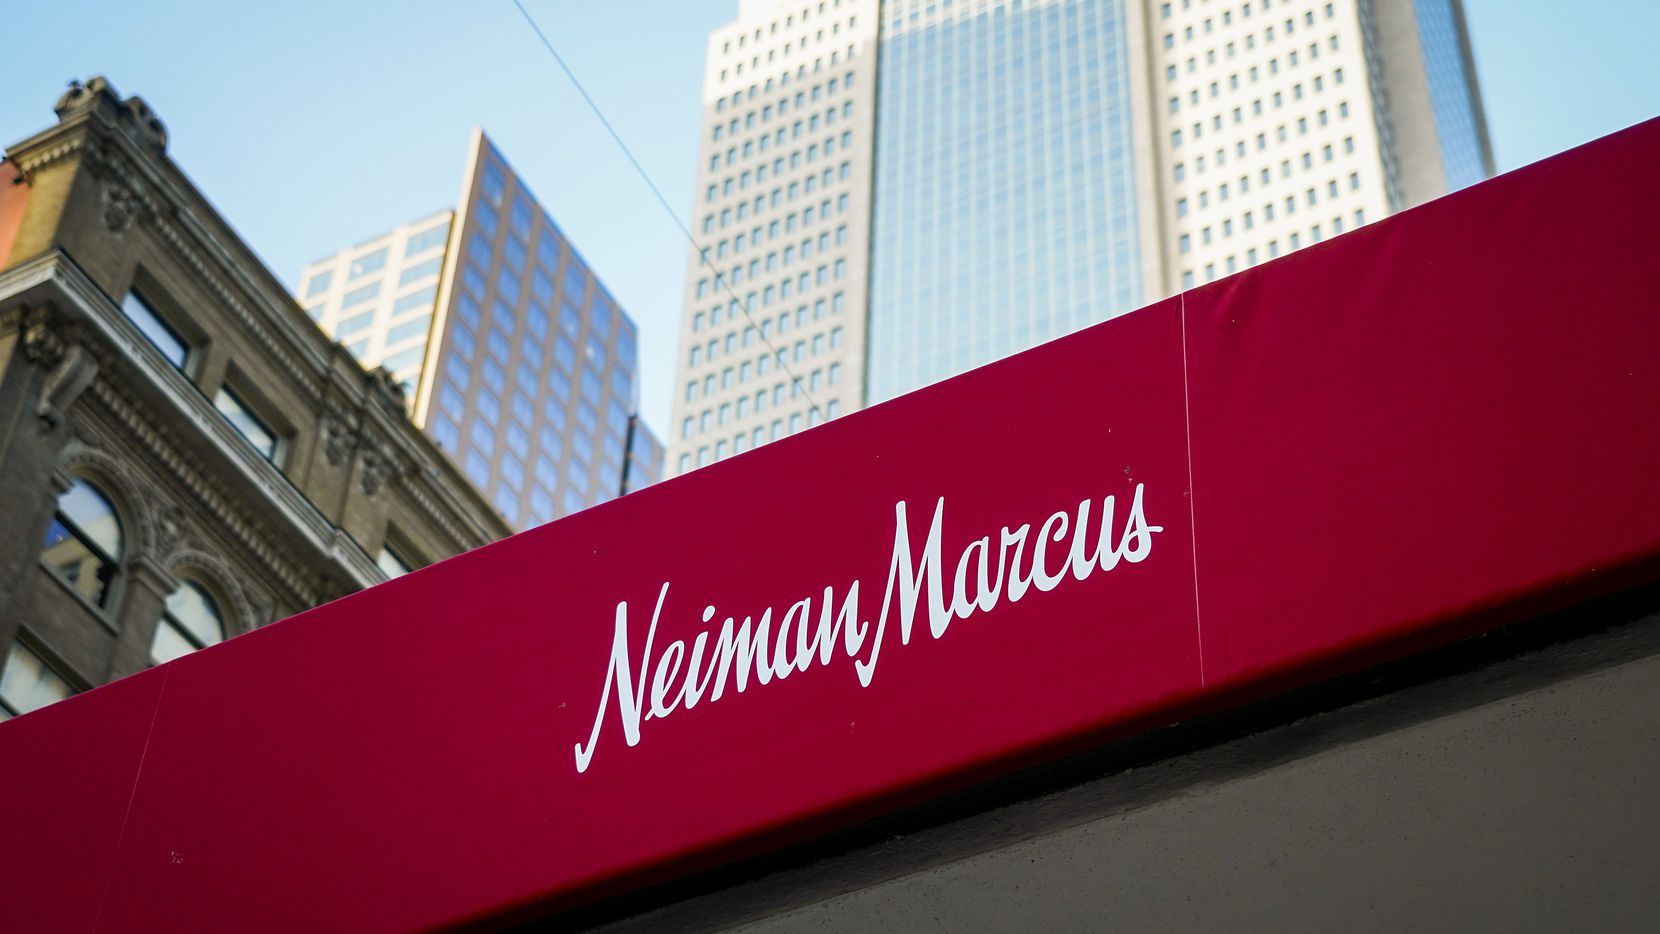 The refinancing lowered Neiman Marcus' annual interest payments by $30 million to about $80 million.